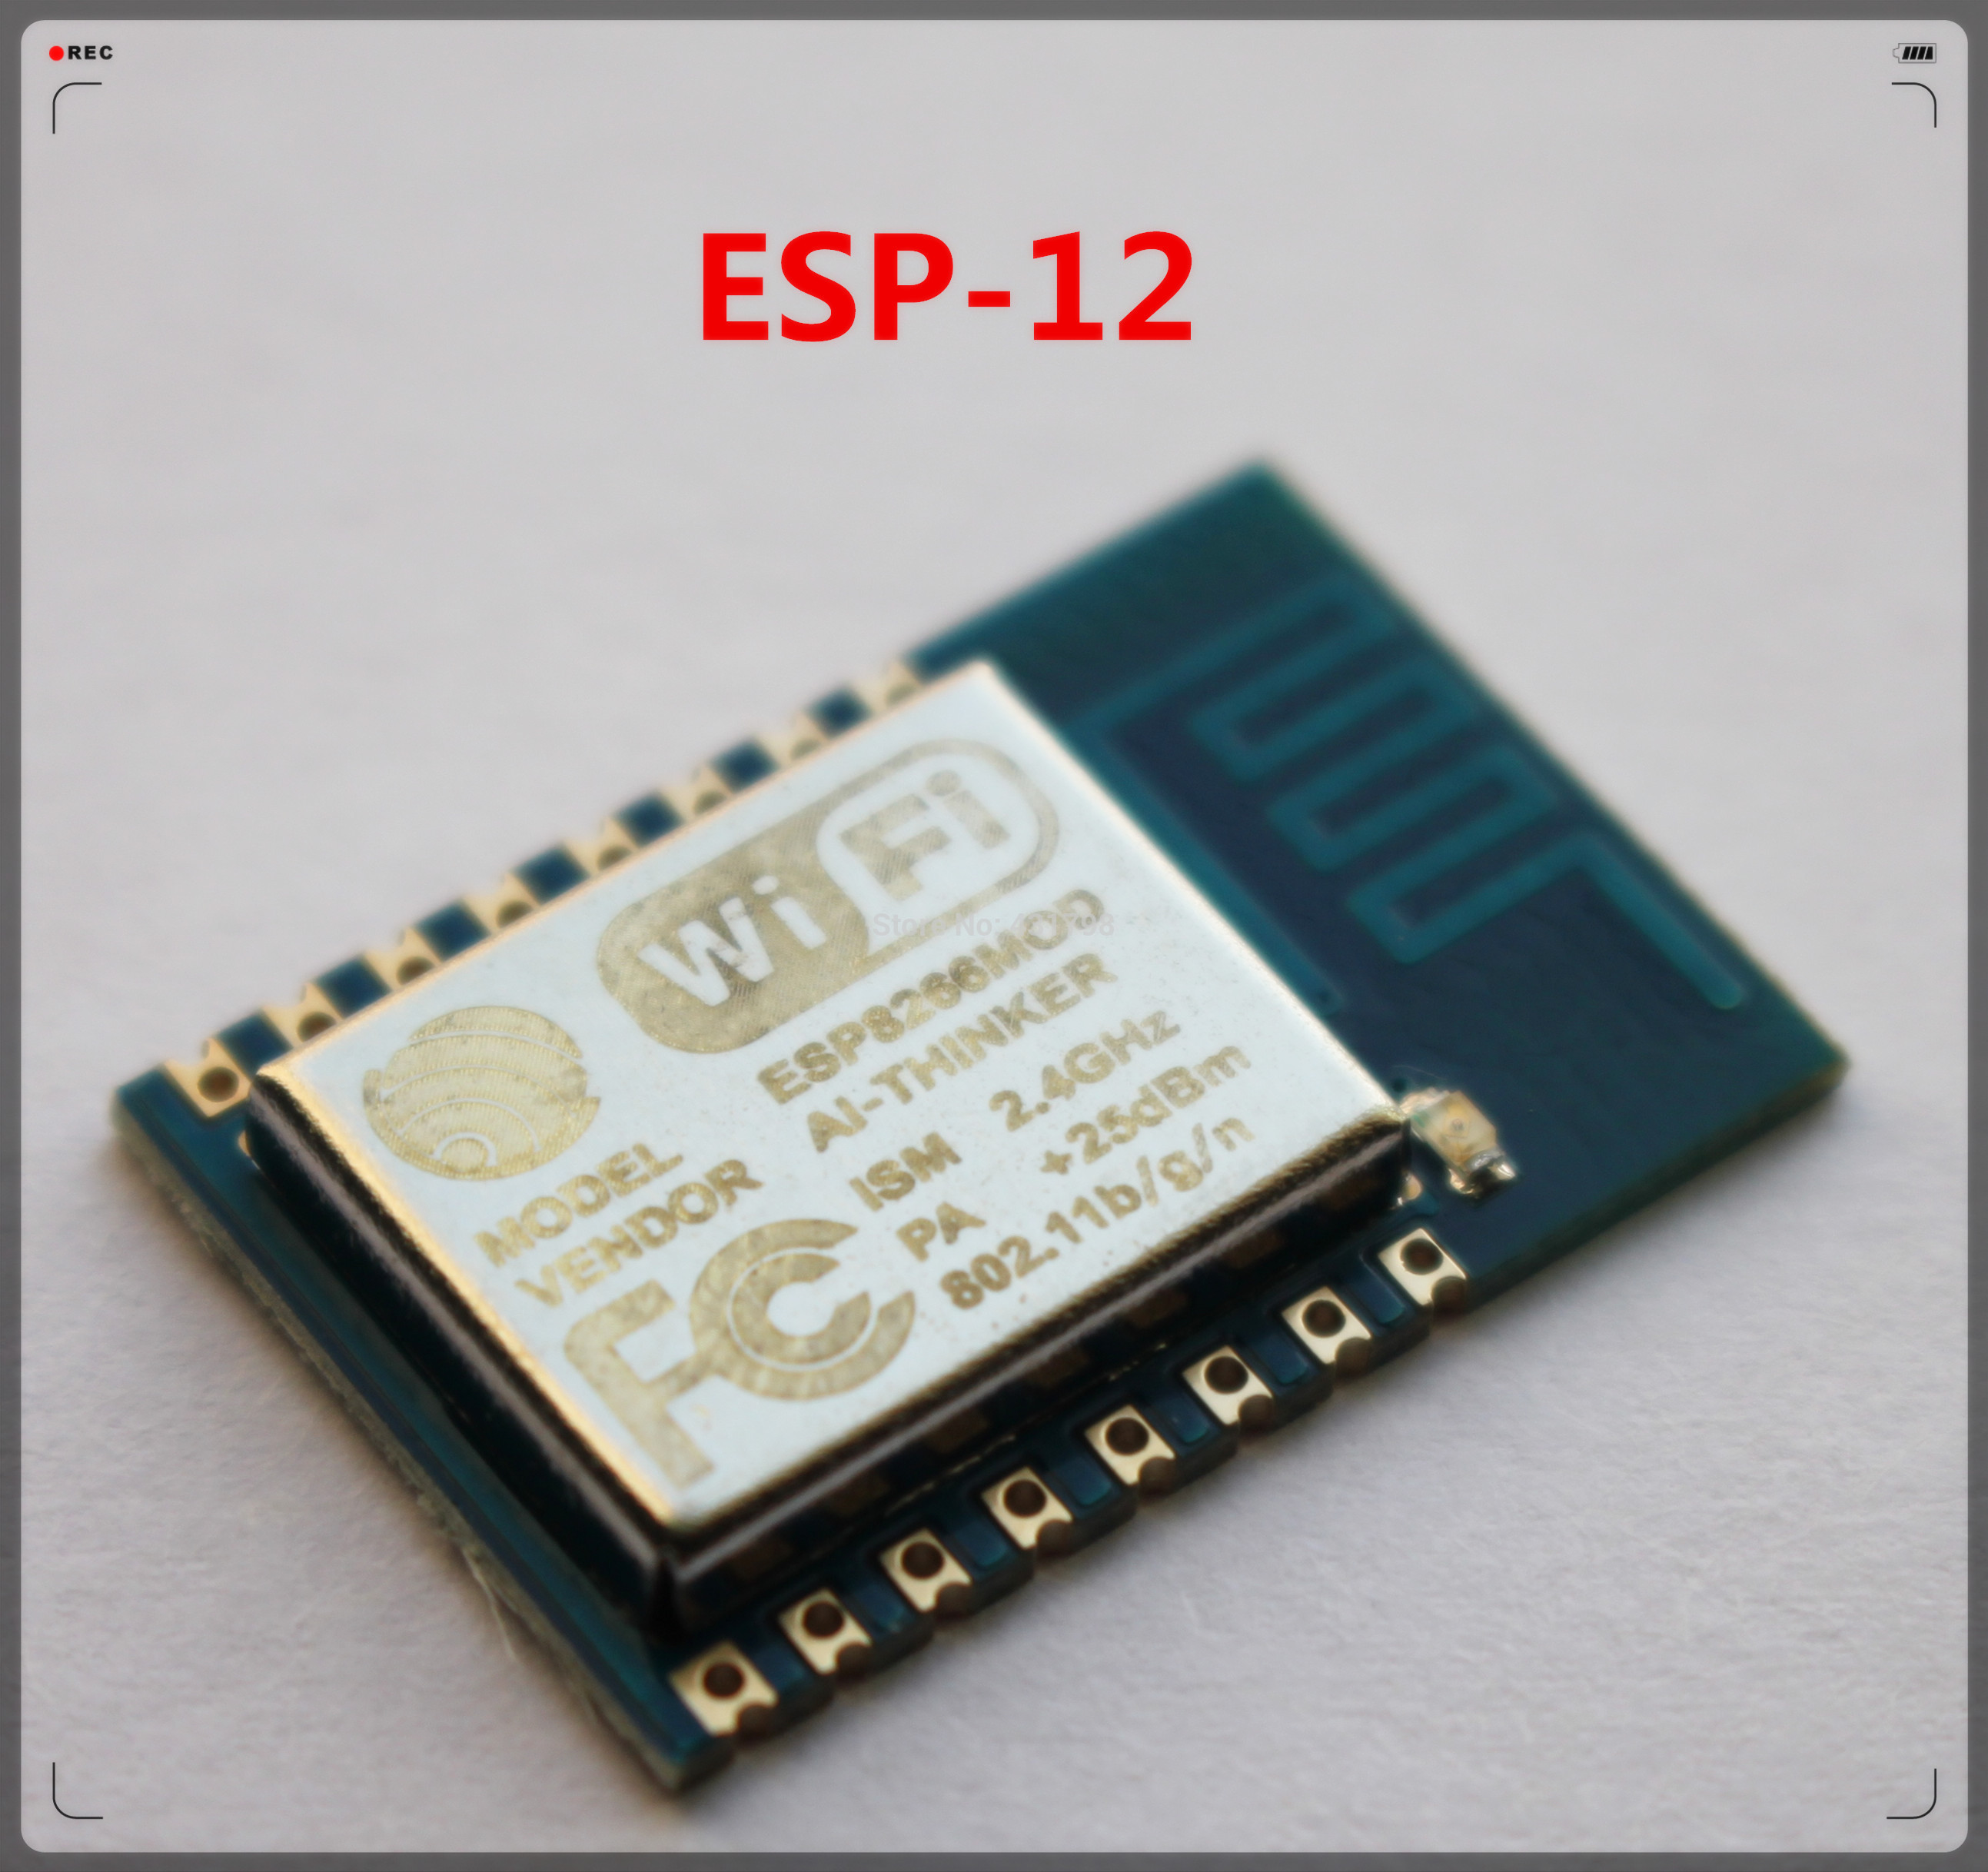 esp8266 serial wifi model esp-12 authenticity guaranteed